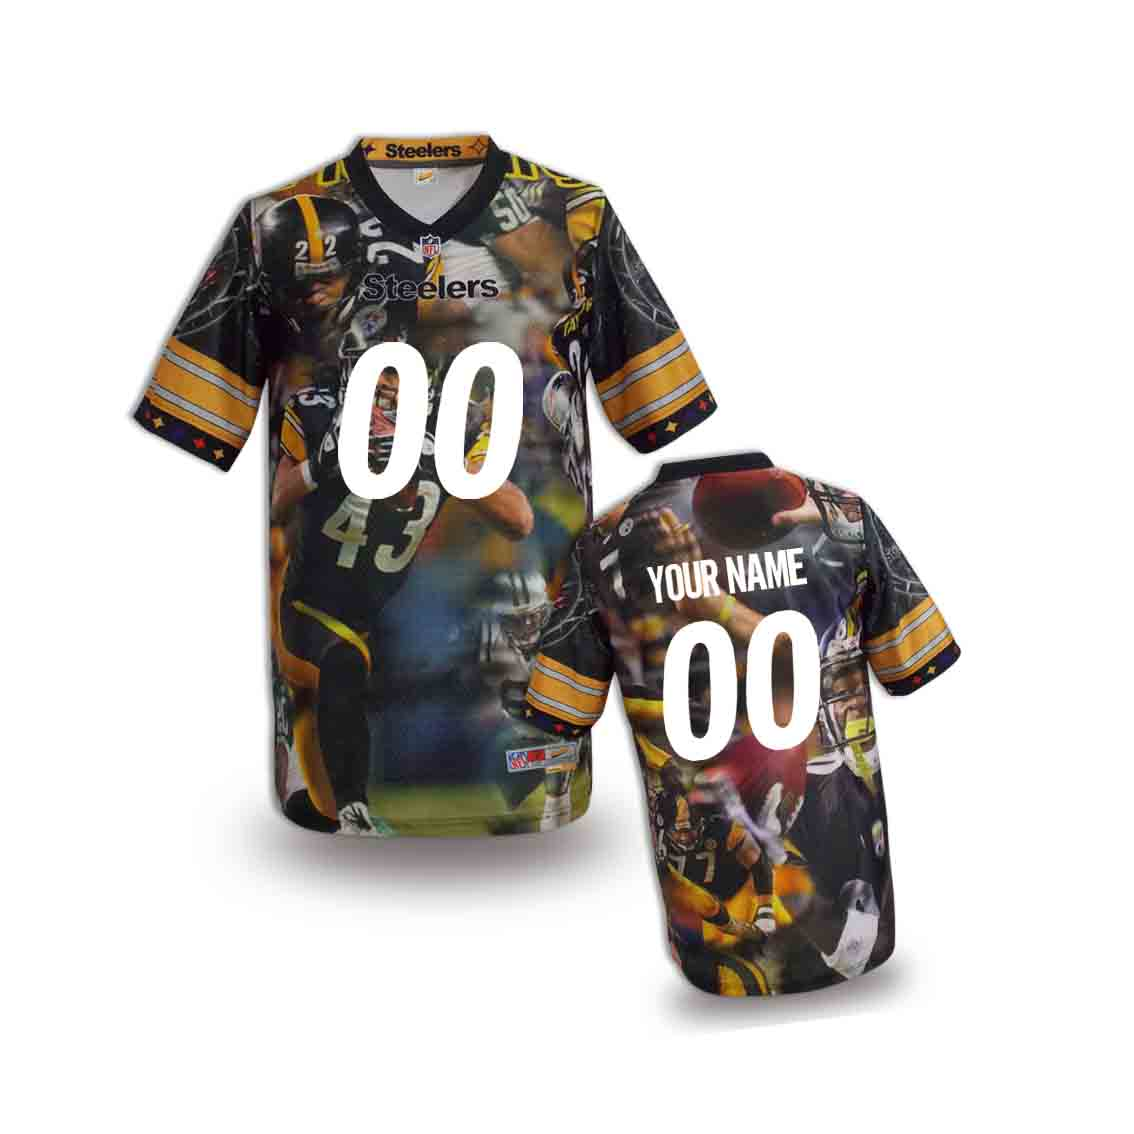 Nike Steelers Customized Fashion Stitched Youth Jerseys05